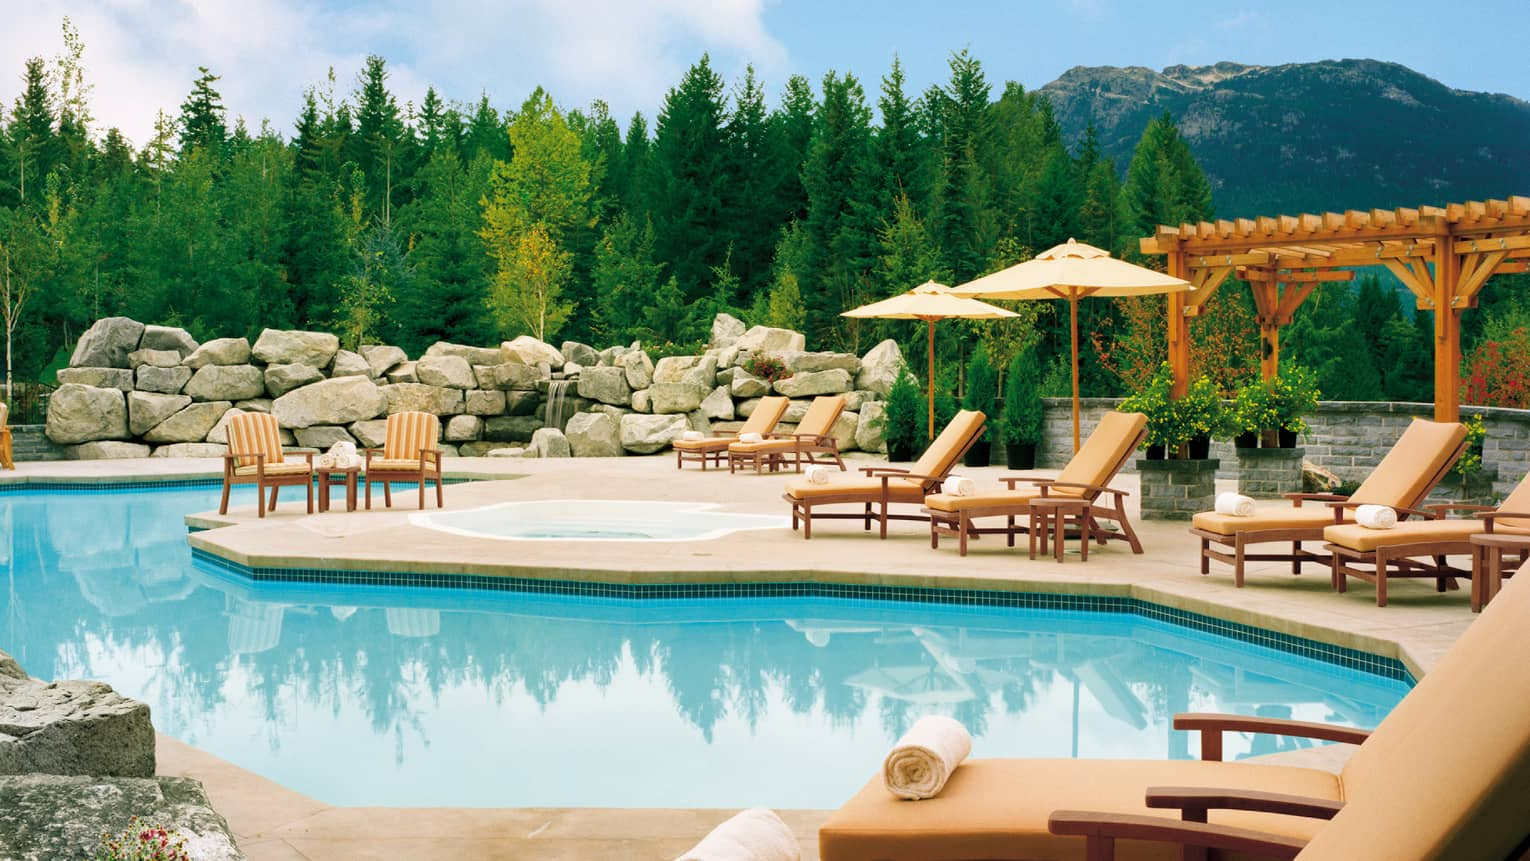 Outdoor swimming pool, patio chairs and umbrellas during summer with green trees, mountain in distance